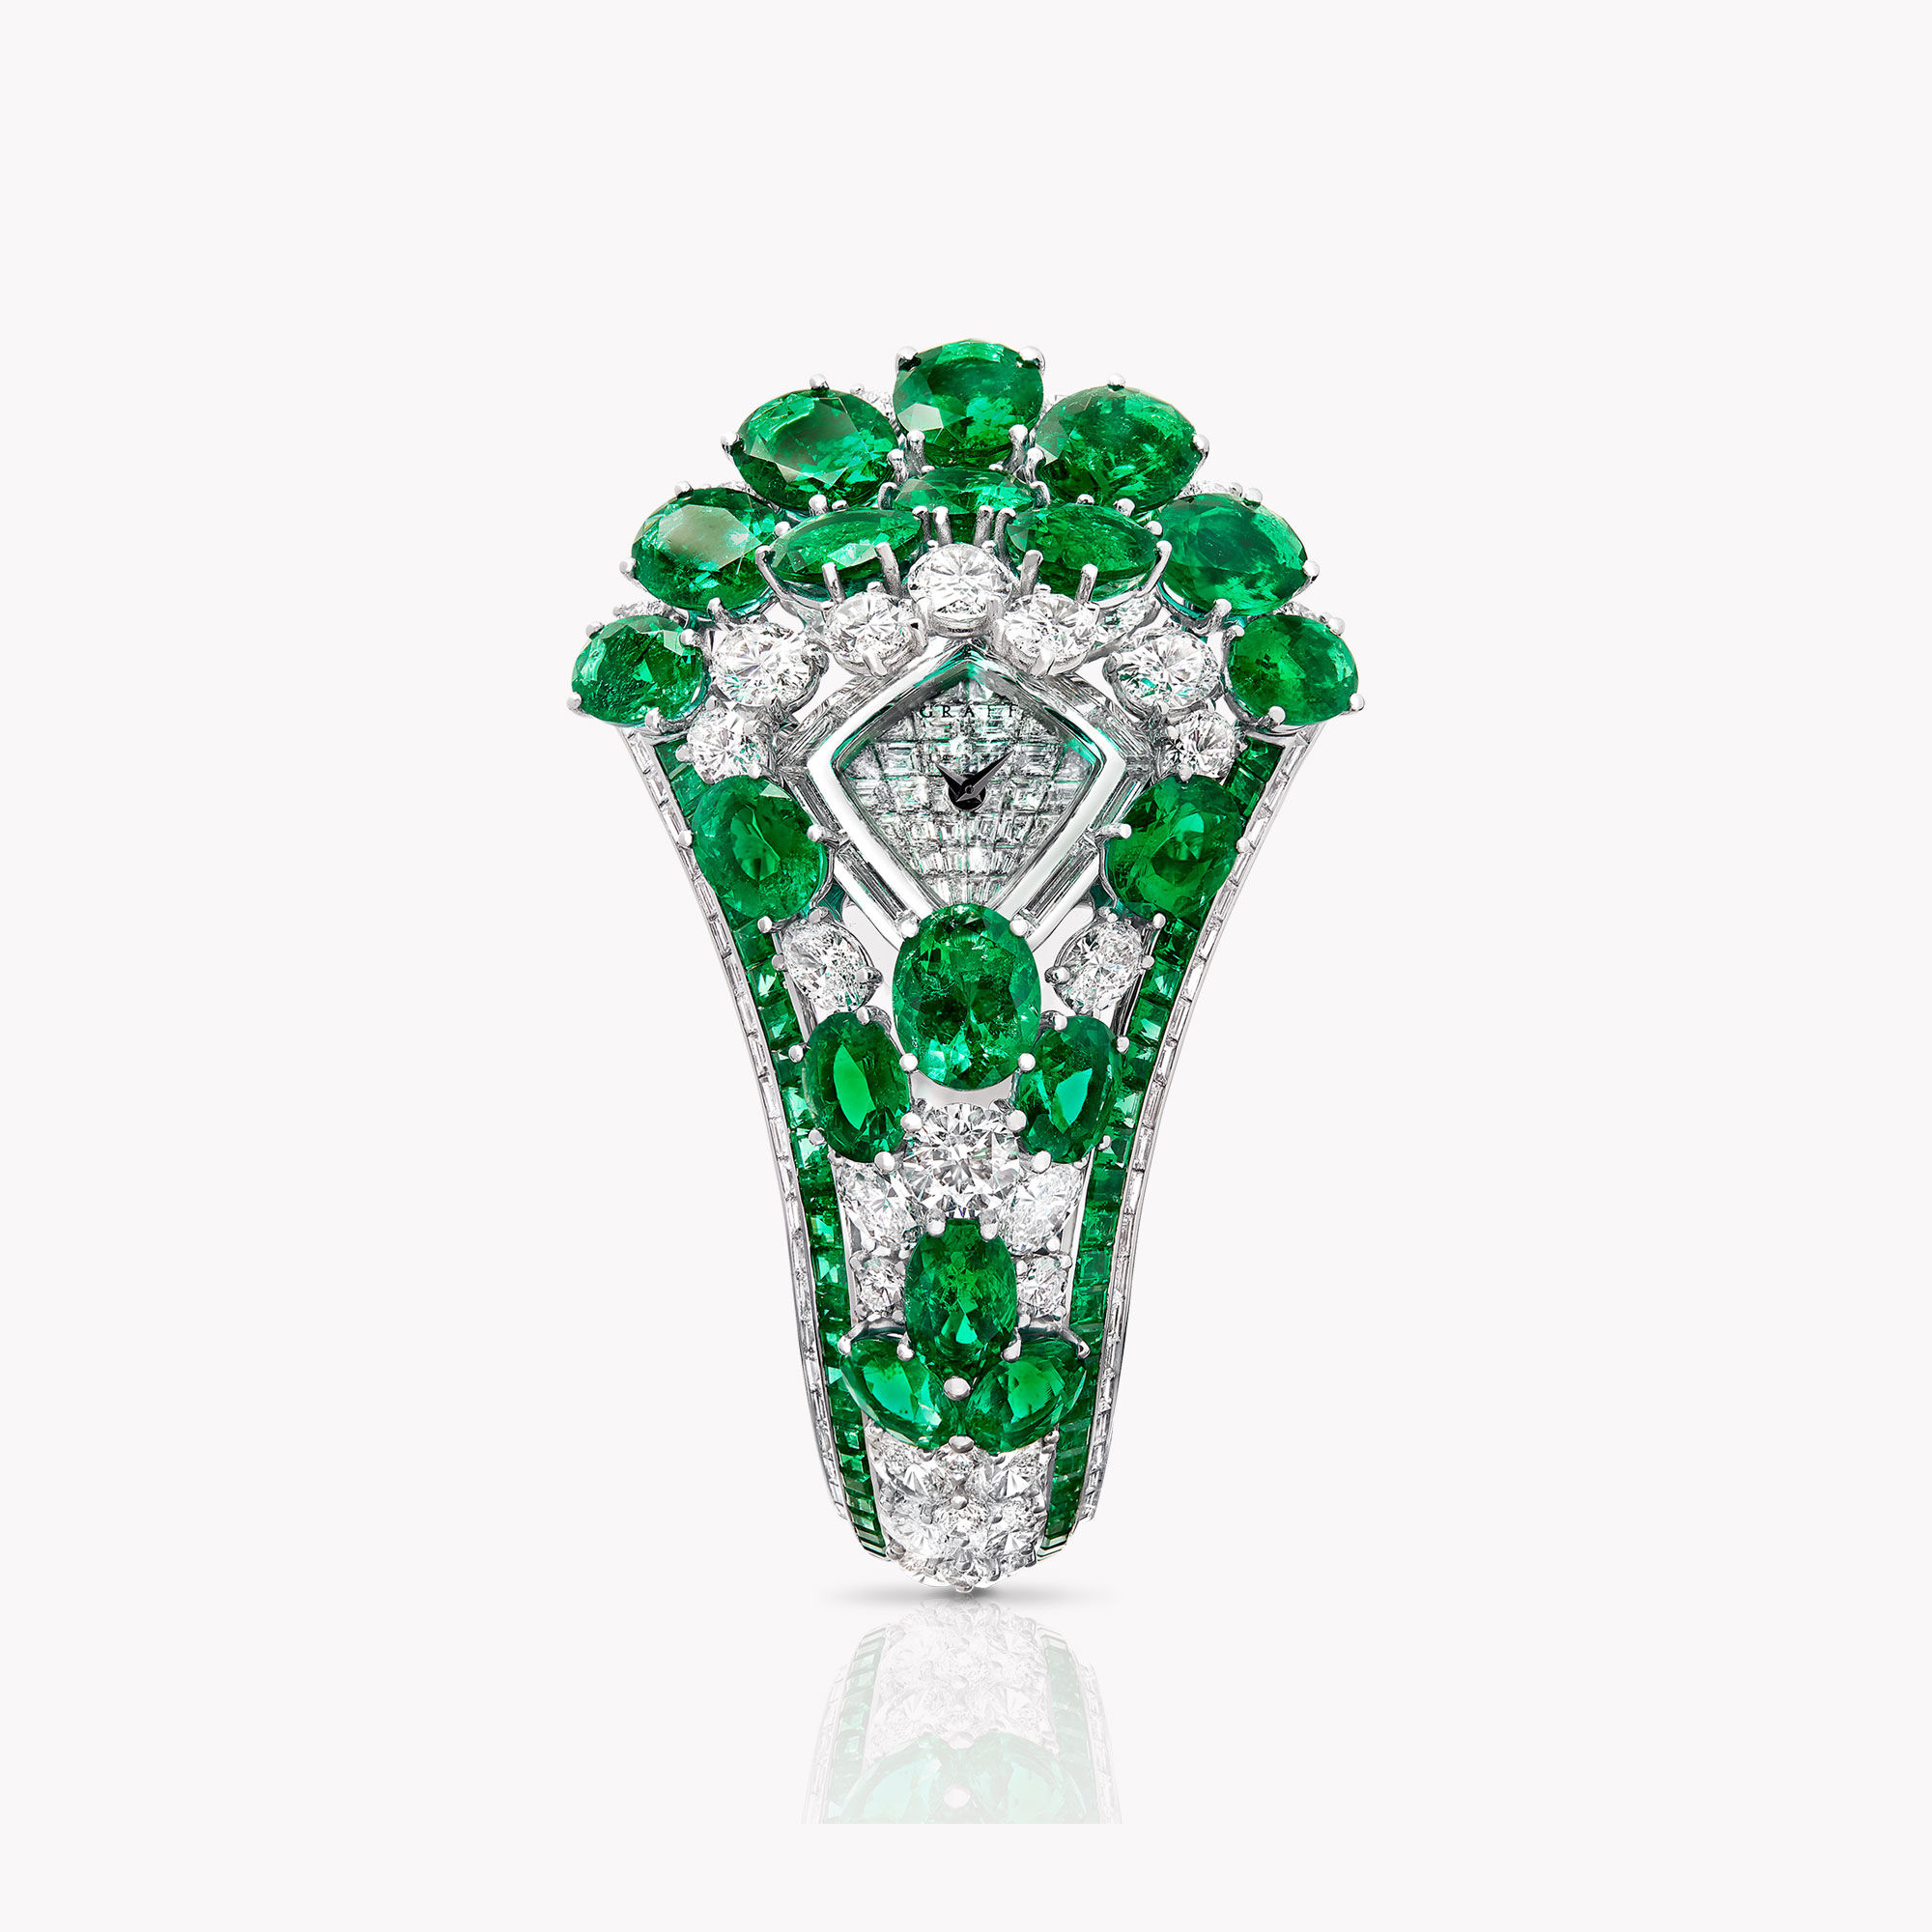 Oval Emerald and Diamond Secret Watch from the Graff unique timepieces collection